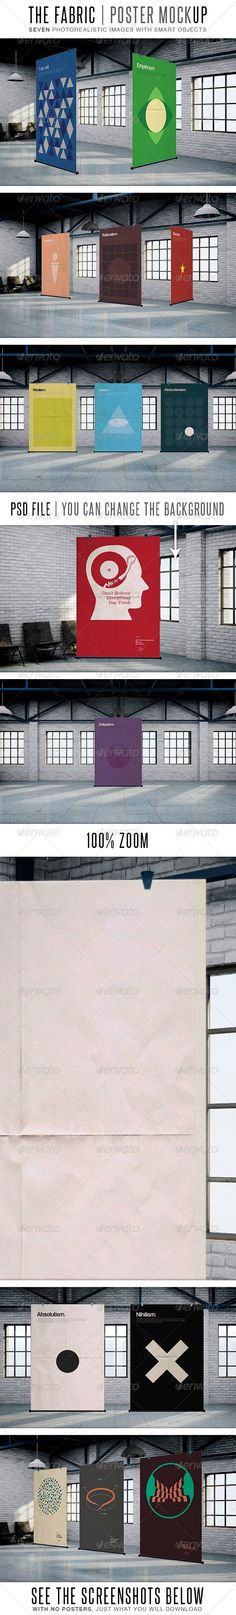 The Fabric MockUp 7 PSD images files Easily editable via smart object High resolution > 2500×1563 Photo-realistic Different backgrounds (customizable) Suitable for posters that are A4, A3, A2, A1 http://startupstacks.com/graphics/fabric-mockup.html - free download